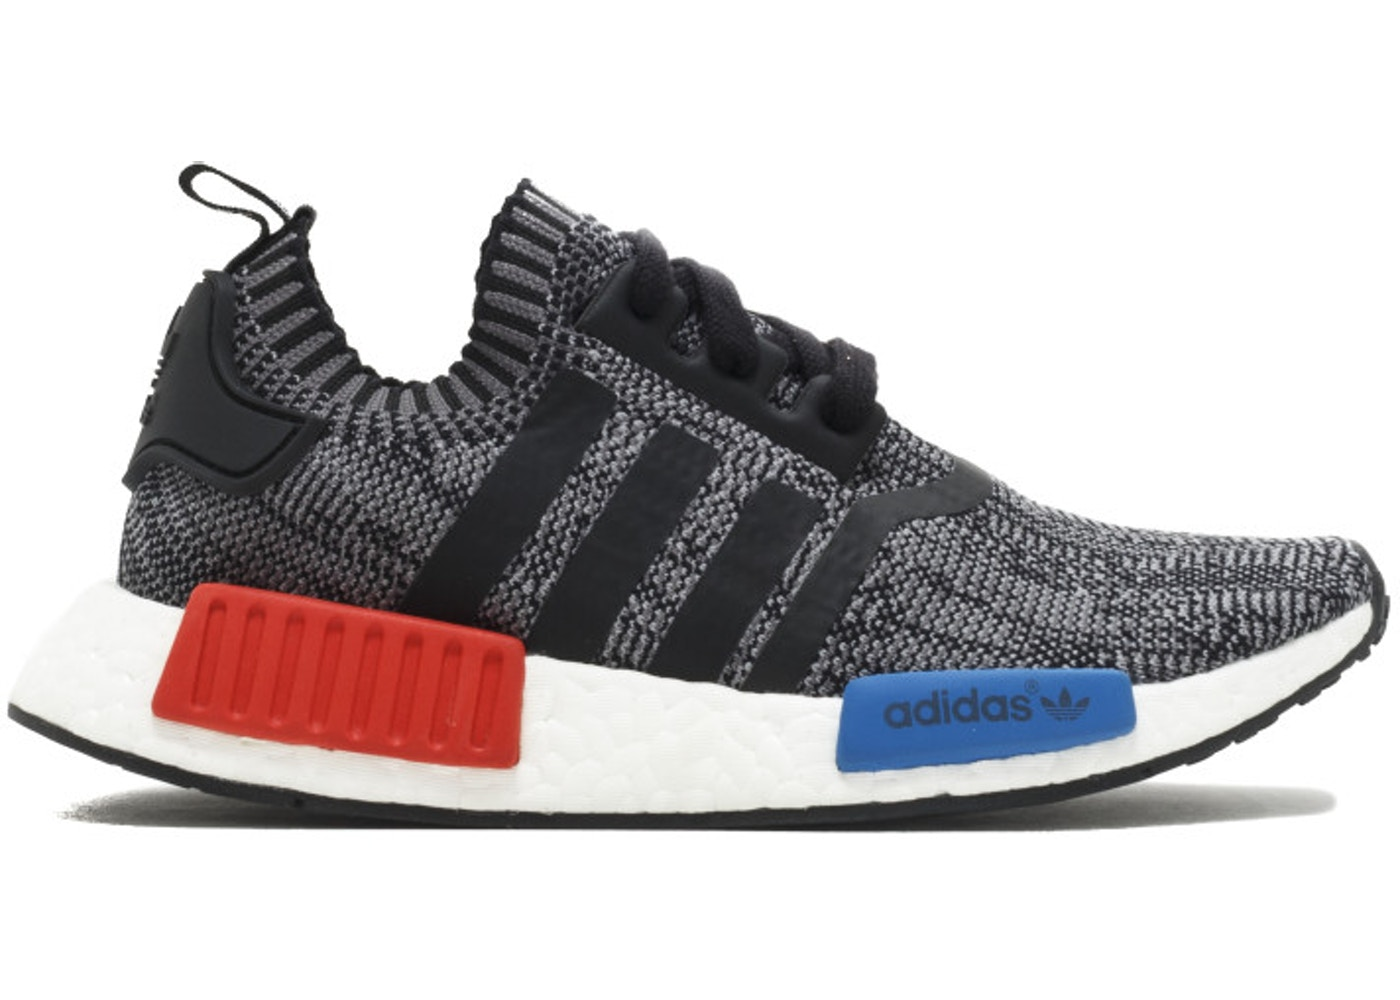 Iman Shumpert Marks Release Of Adidas NMD R1 [PHOTOS